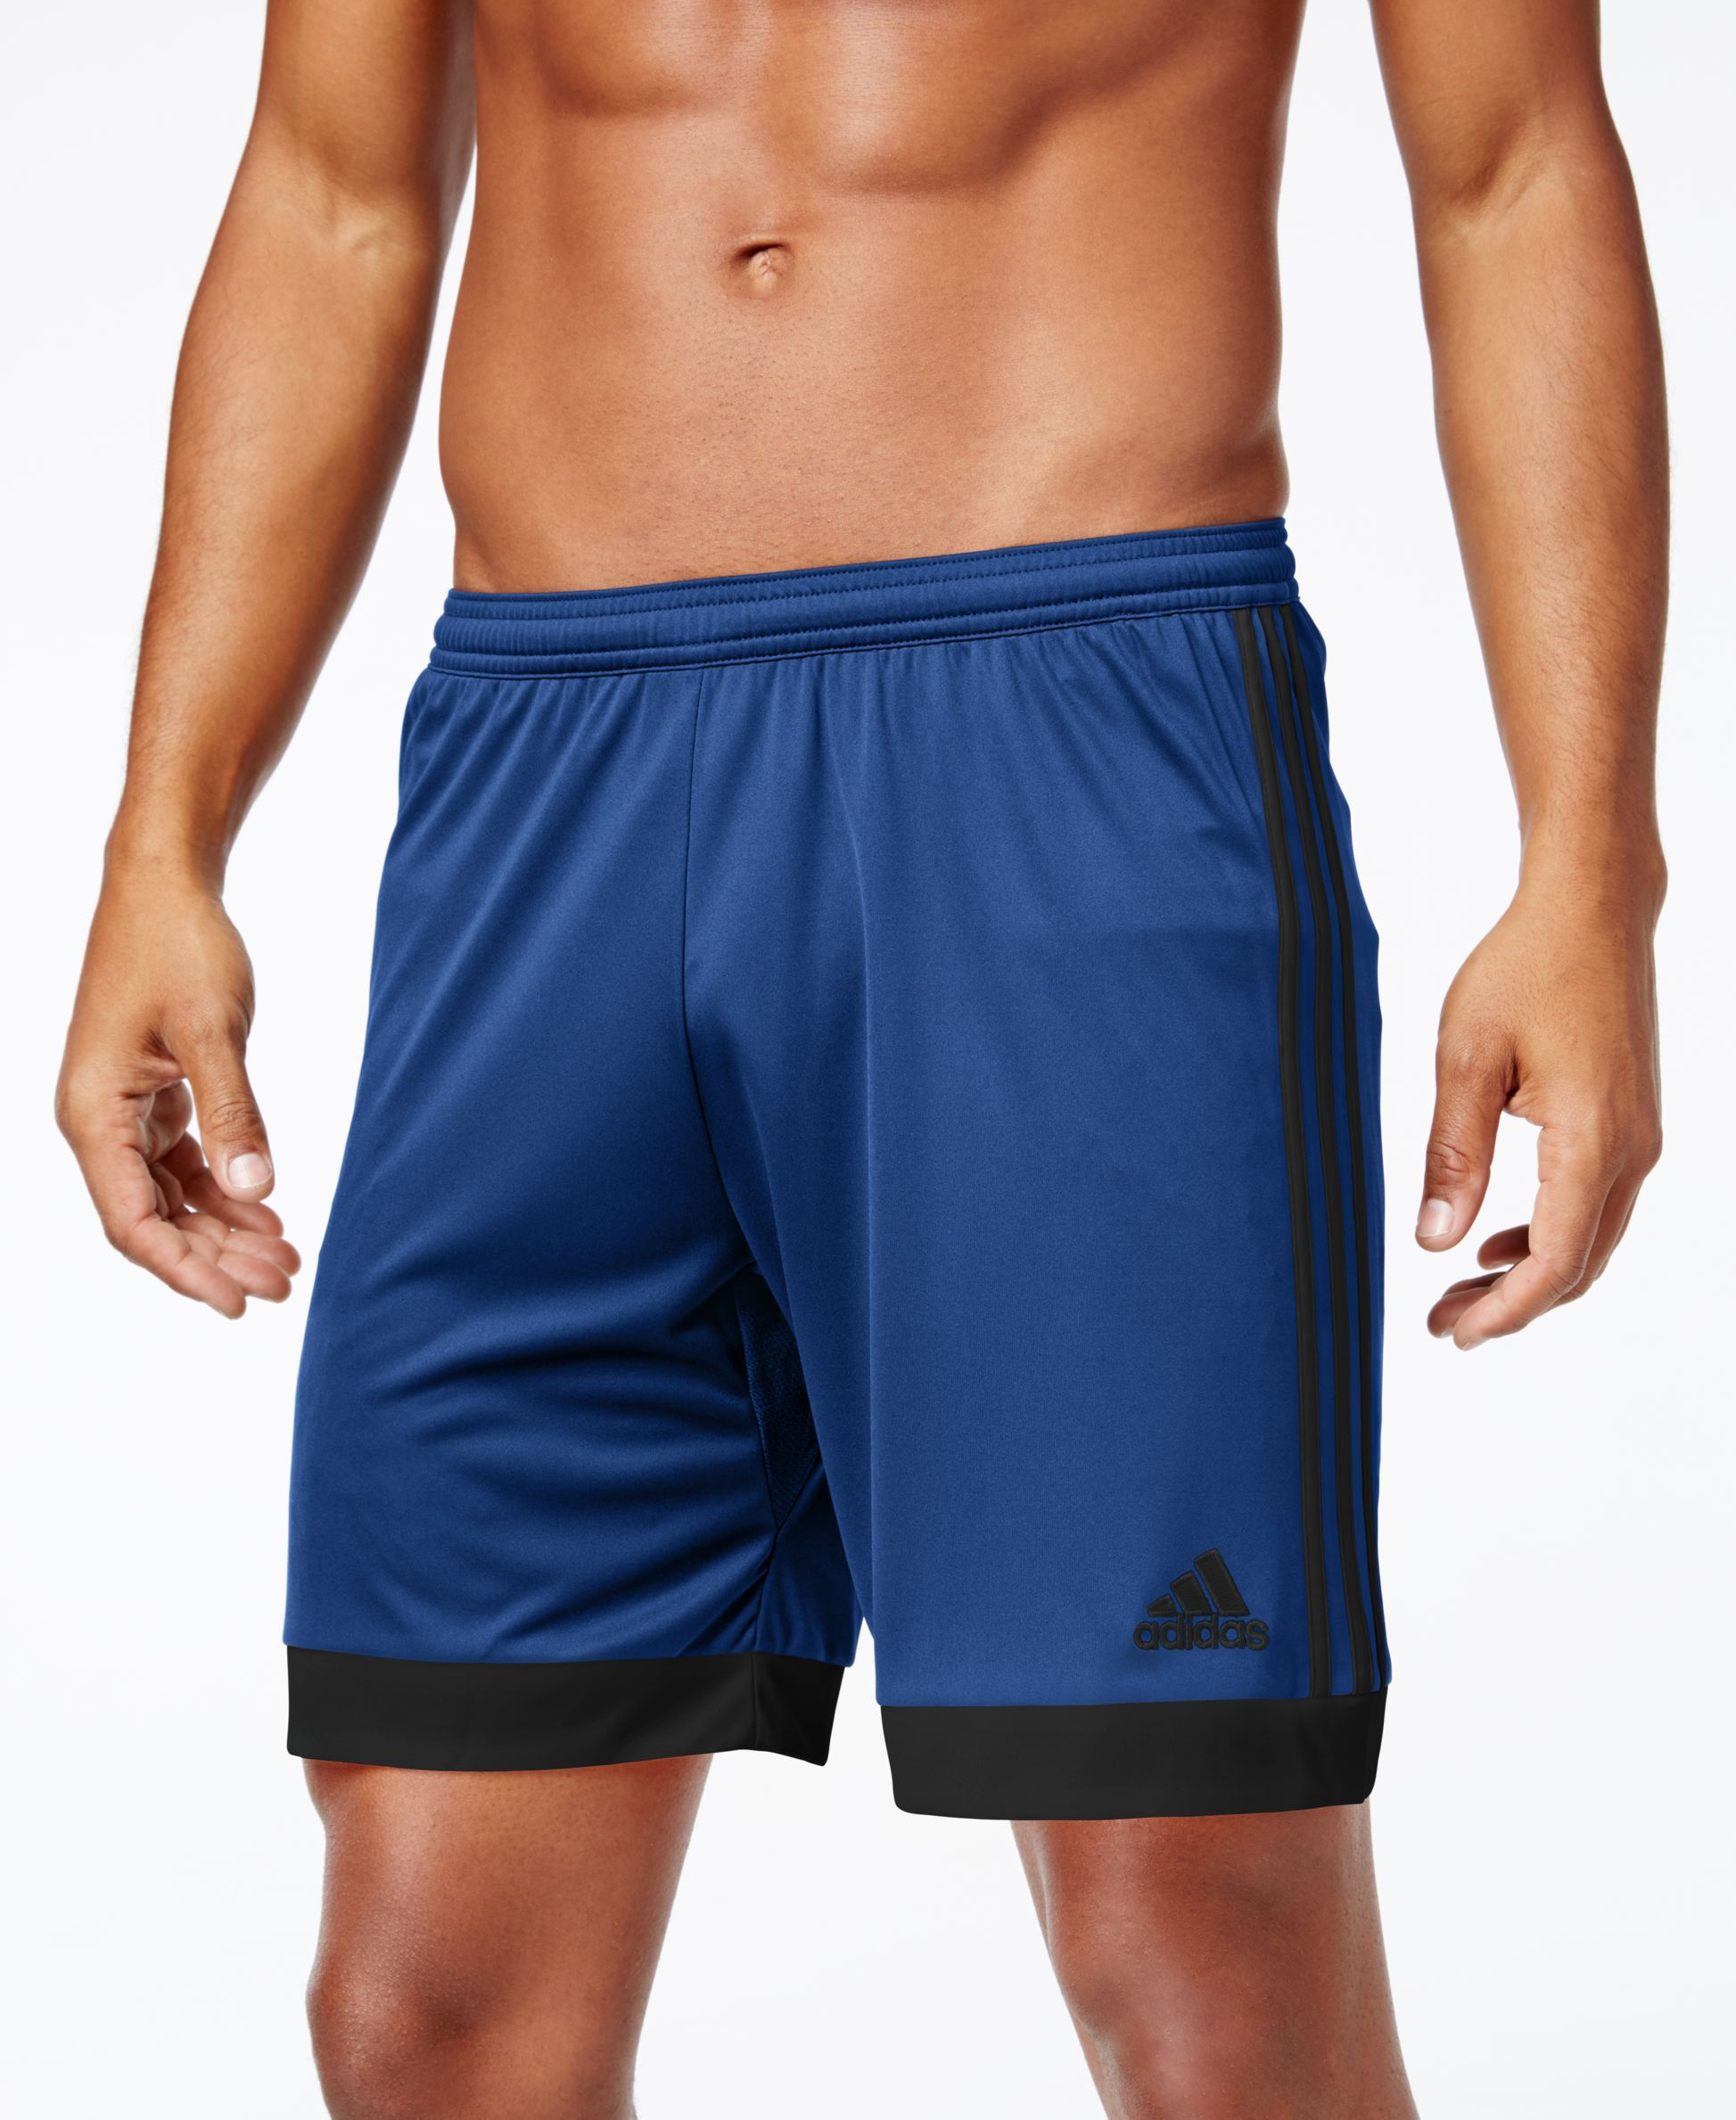 d508b106f23 adidas Men's Tastigo 15 Soccer Shorts | Products | Adidas men ...